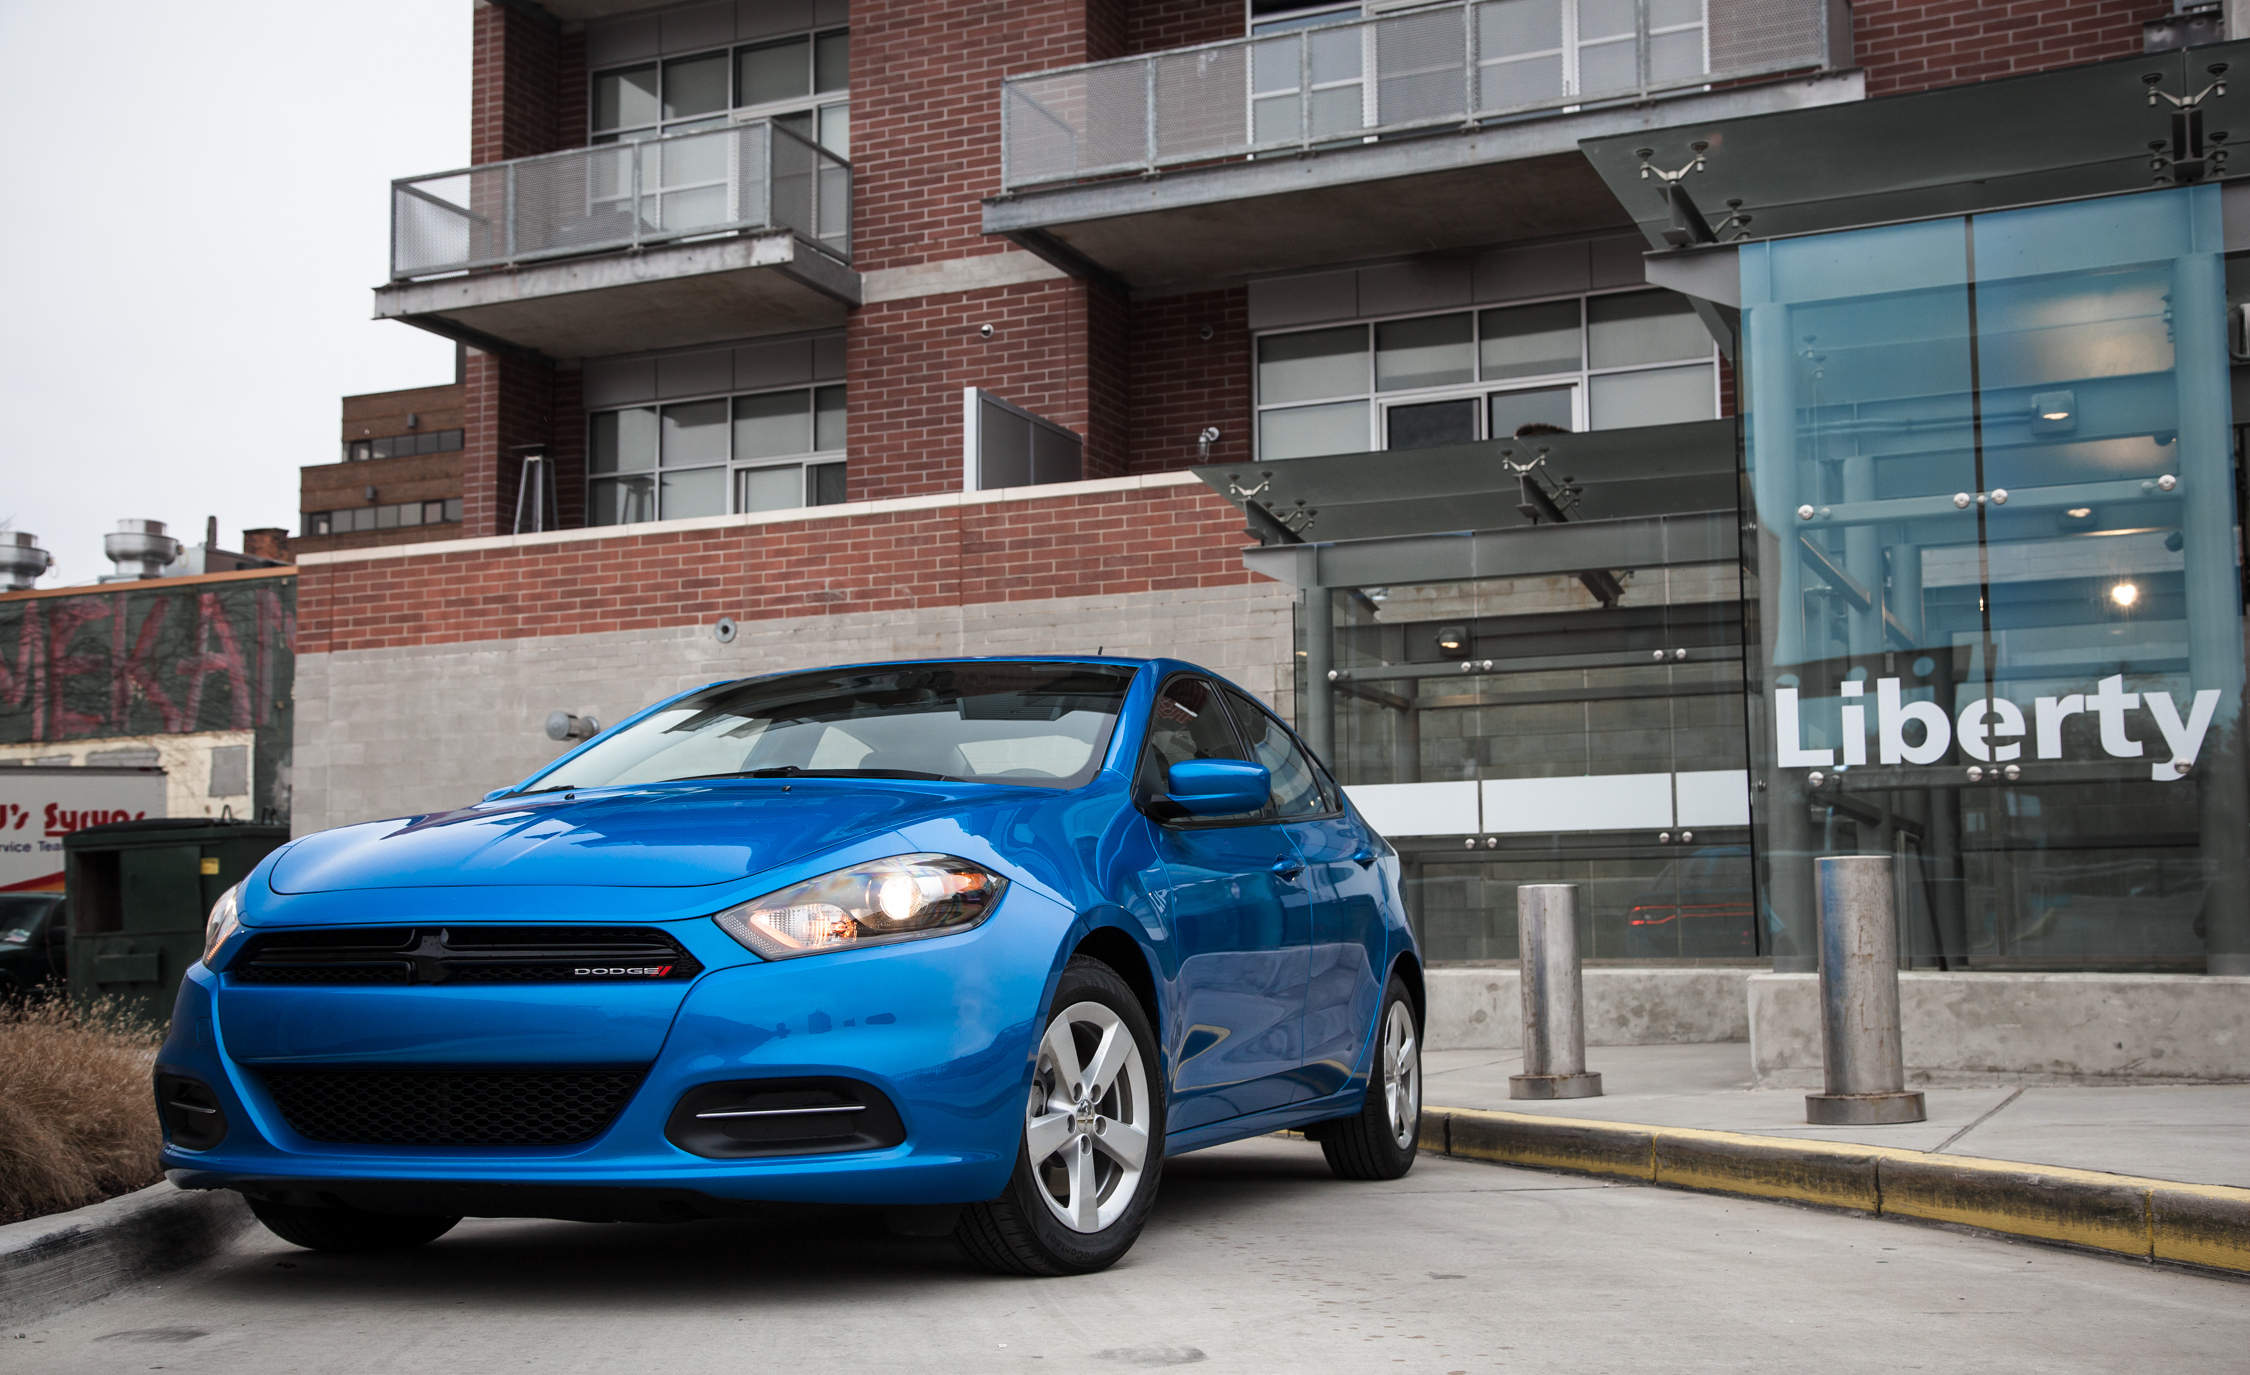 2015 Dodge Dart SXT (Photo 14 of 14)